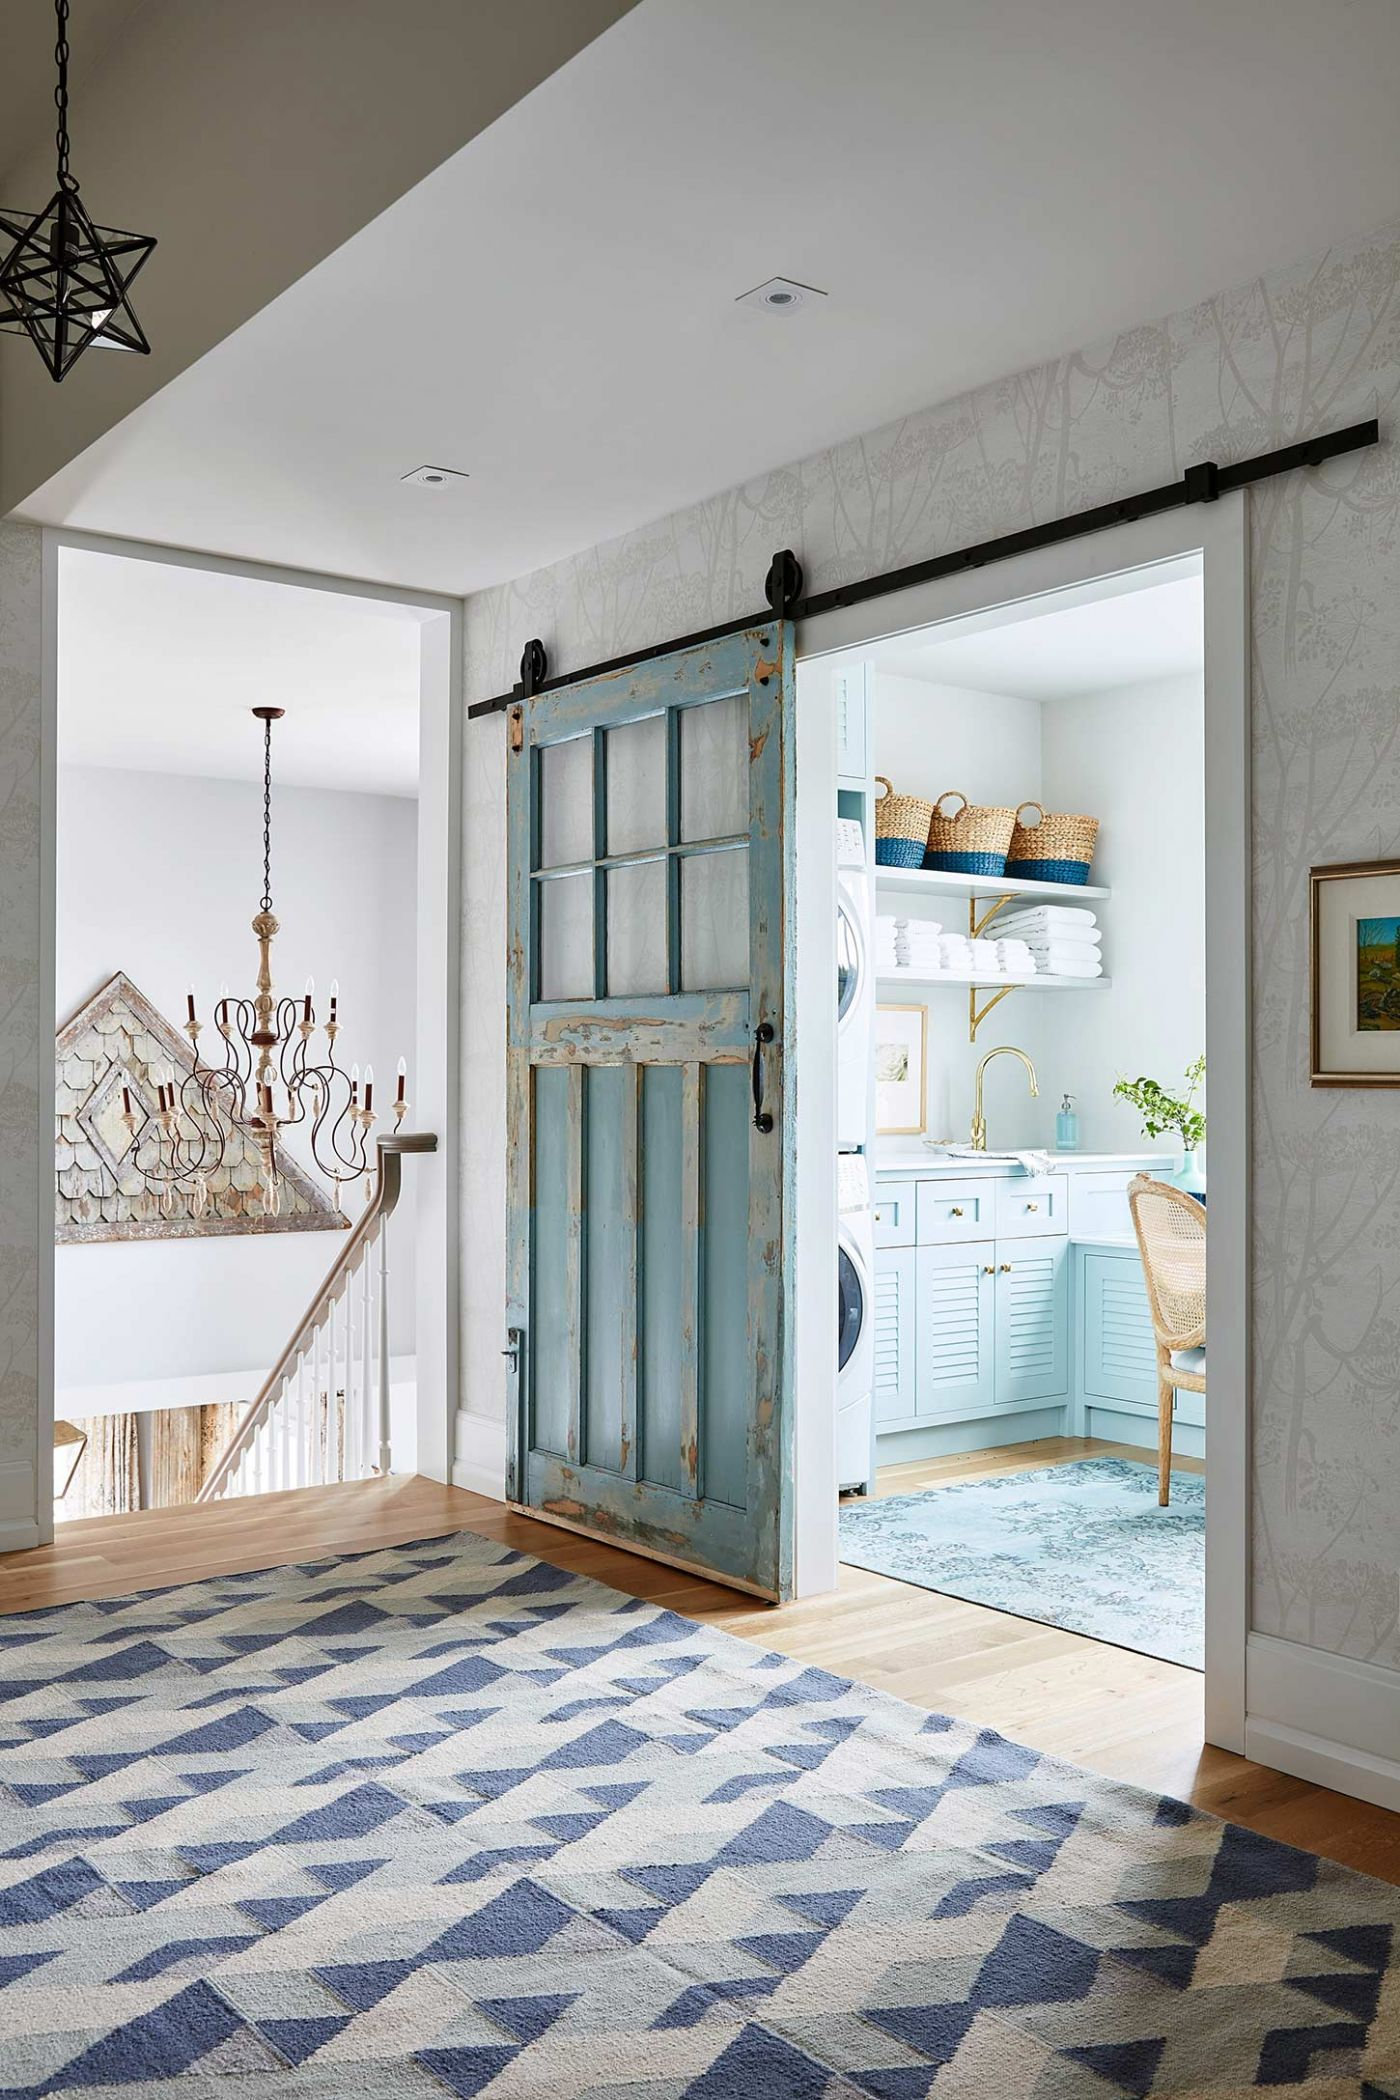 Beautiful sliding turquoise blue vintage door to laundry room in Sarah Richardson's off the grid house . #barndoor #vintagedoor #turquoise